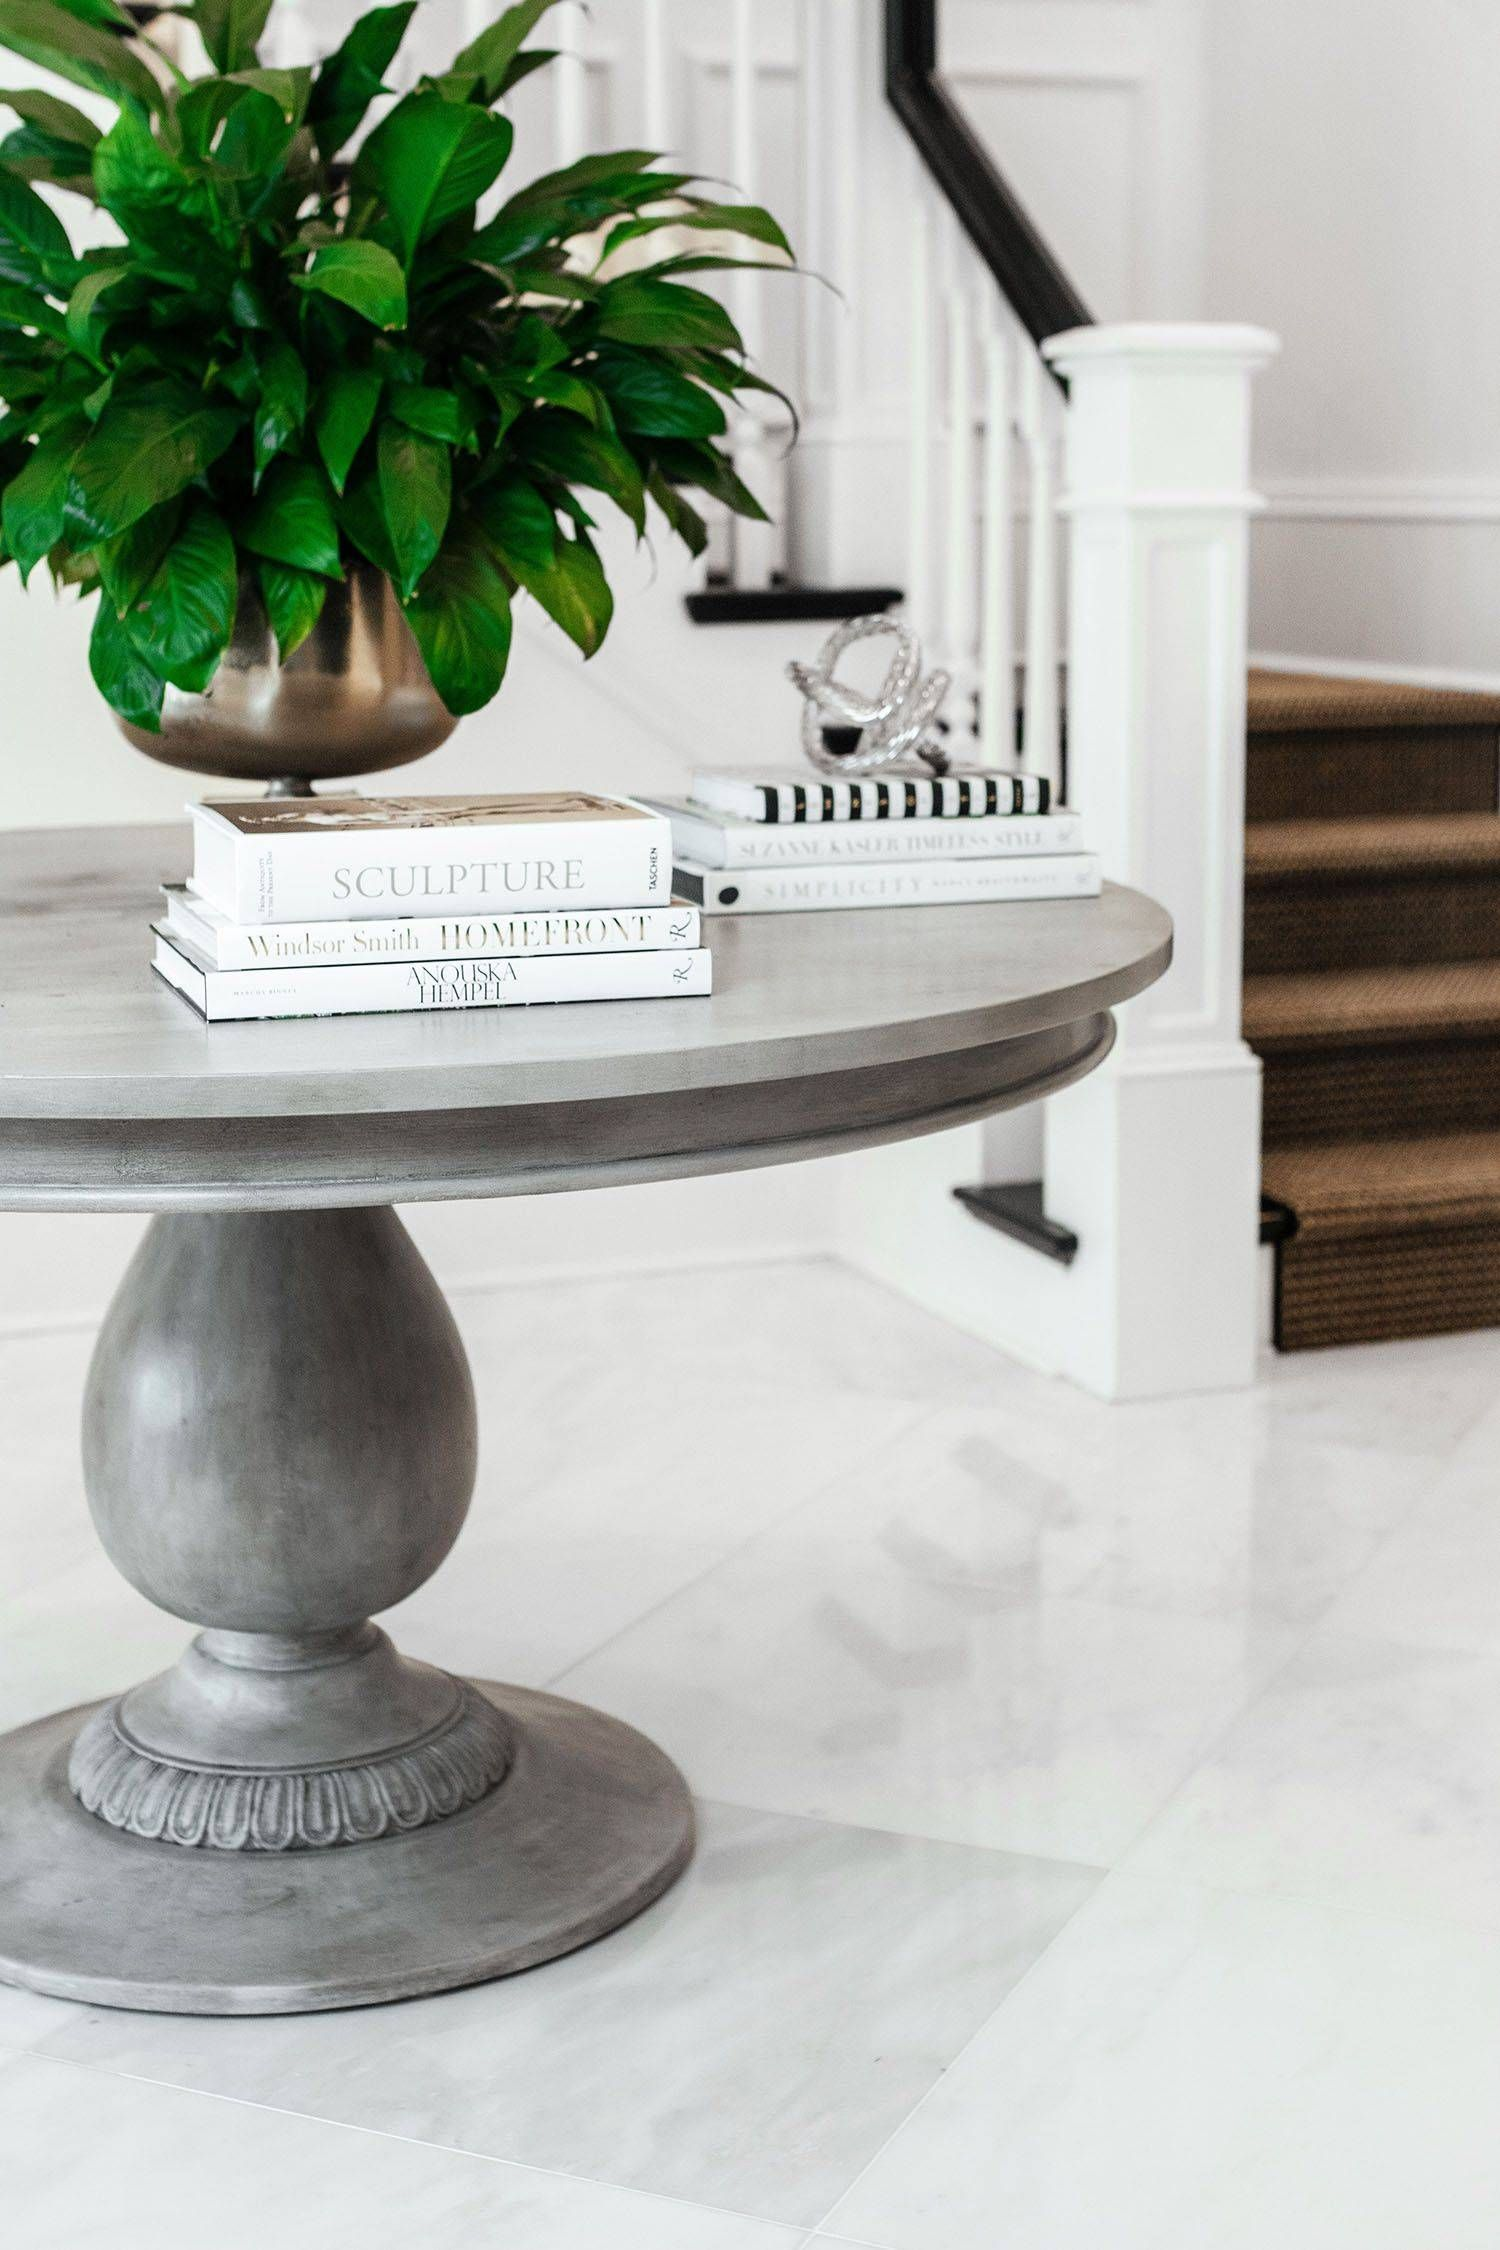 20 Round Decorative Table More Image Visit Https Homecreativa Com 20 Round Decorative Table Entry Table Decor Round Foyer Table Entryway Round Table